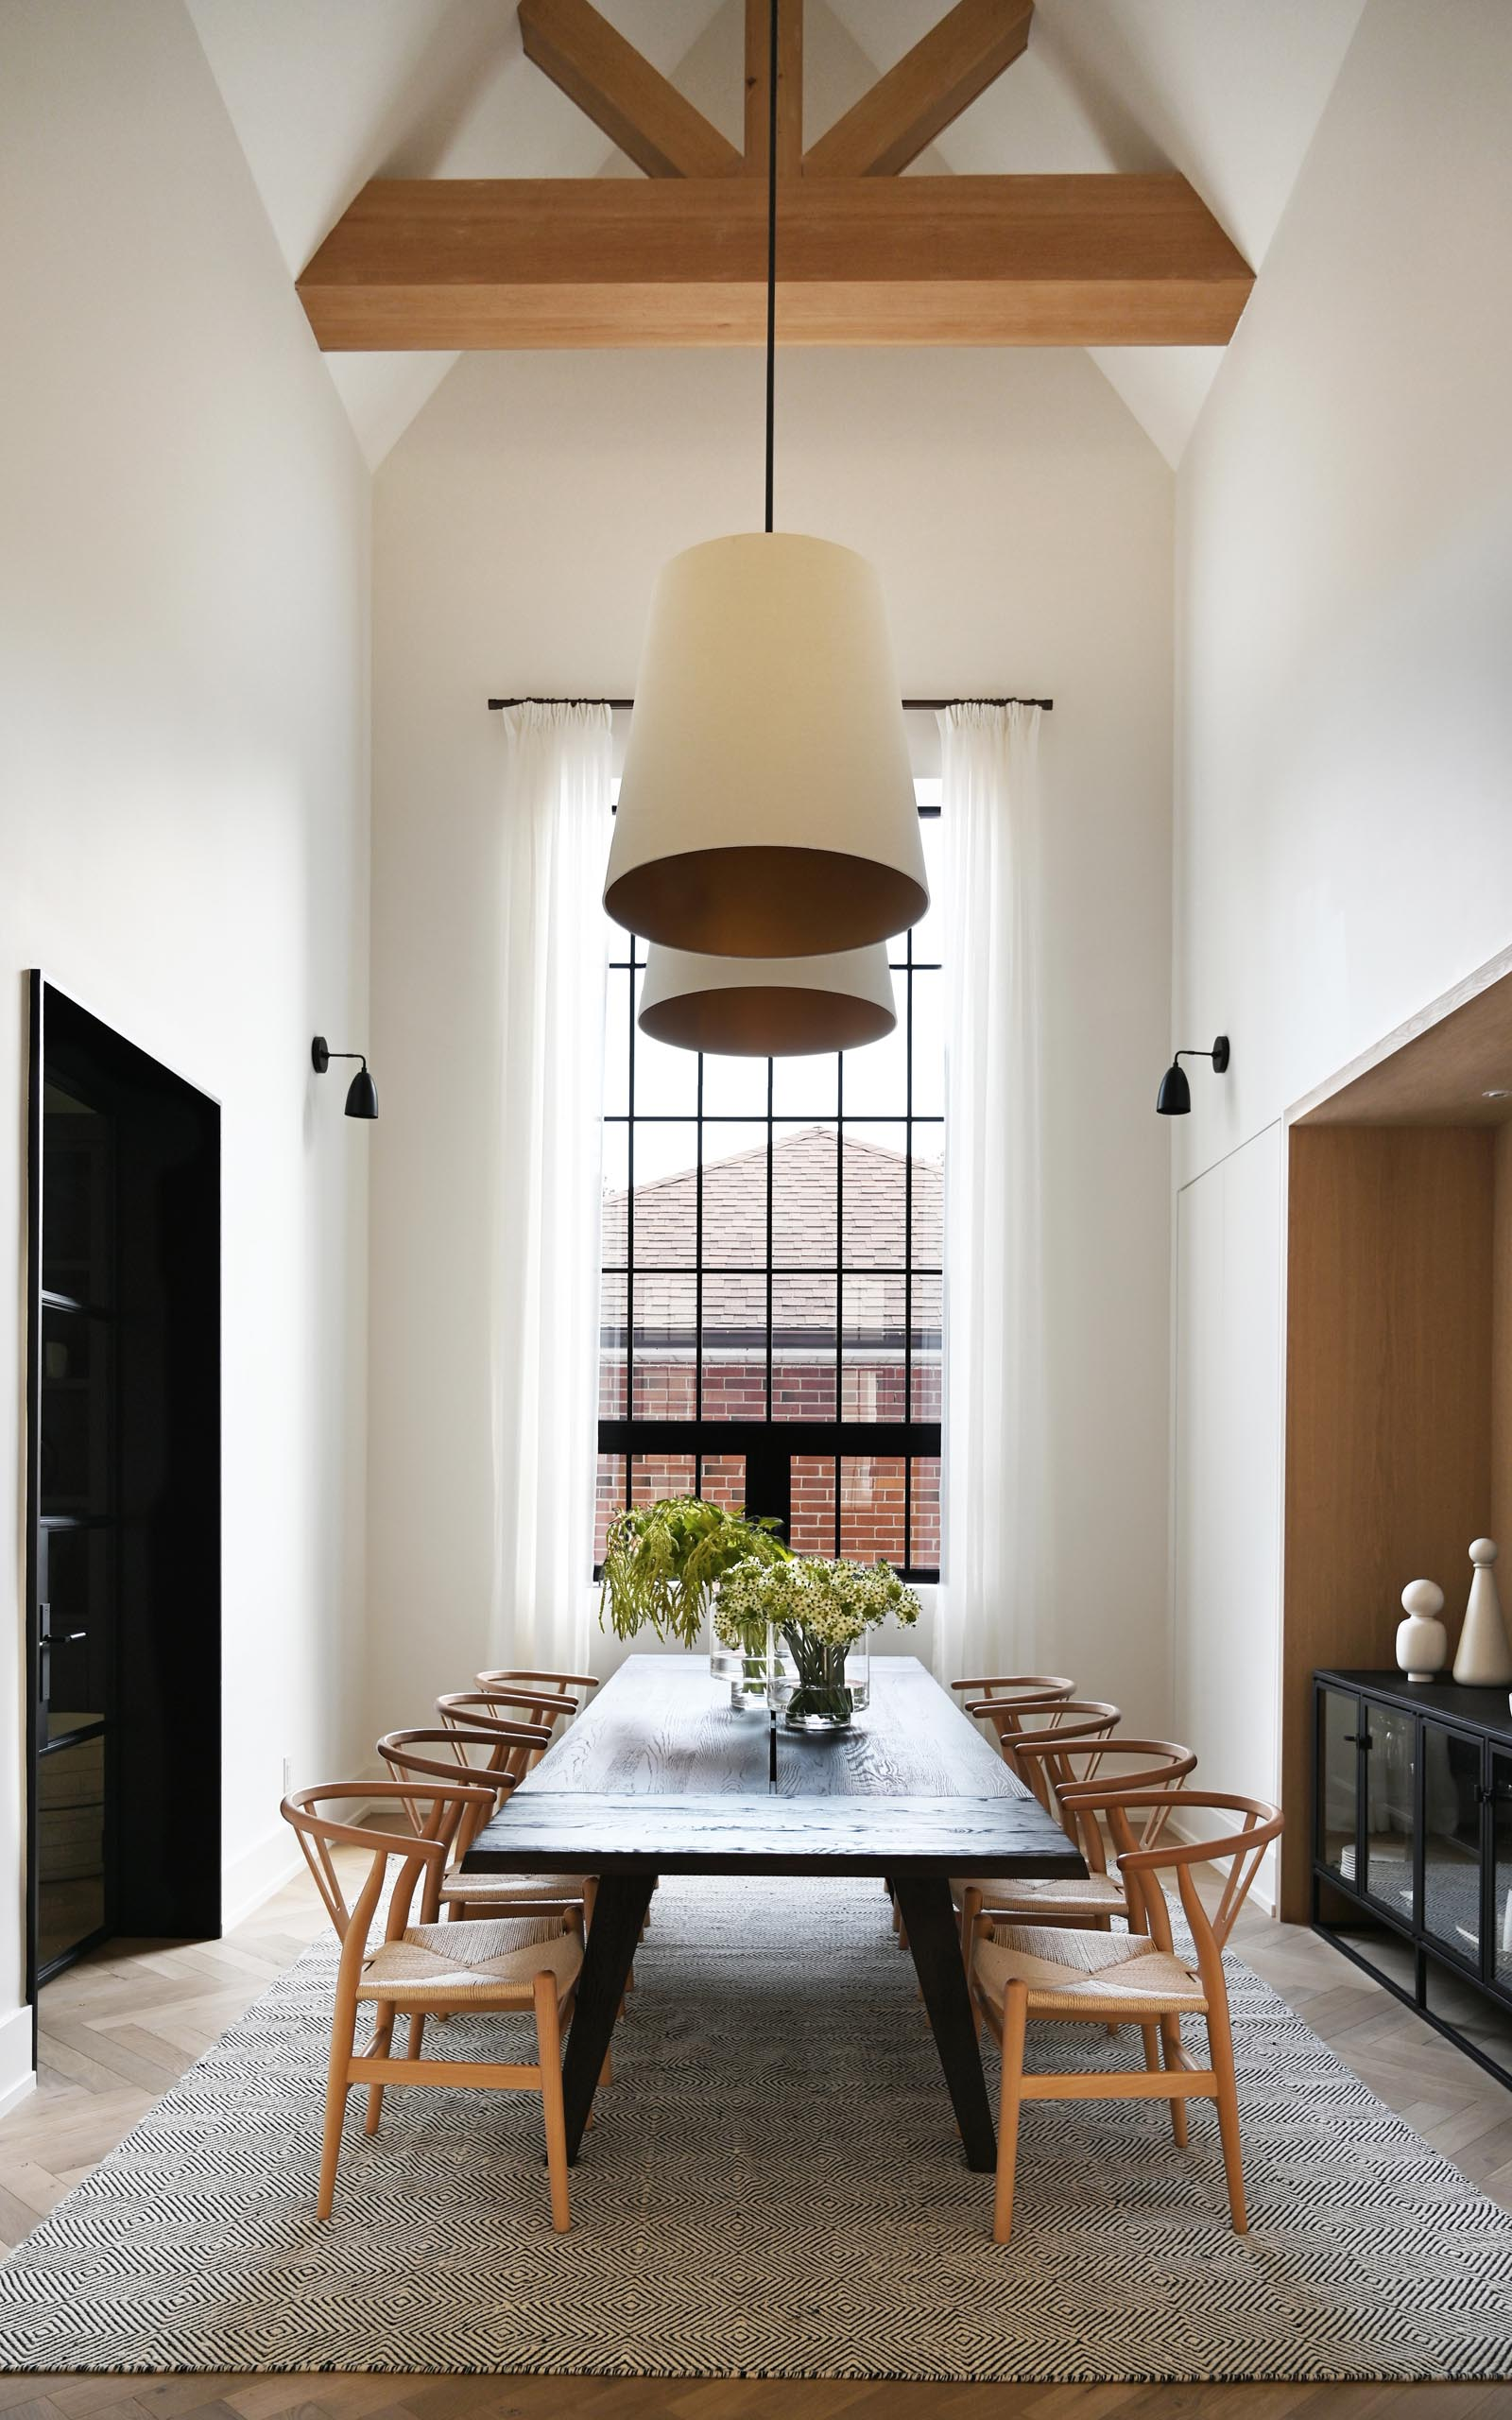 This farmhouse-inspired kitchen and dining room feature cathedral ceilings with exposed wood beams, warm wood accents and natural materials. Oversized pendant lights complement the grand space, and add a warm glow for evenings spent around the large dining table.